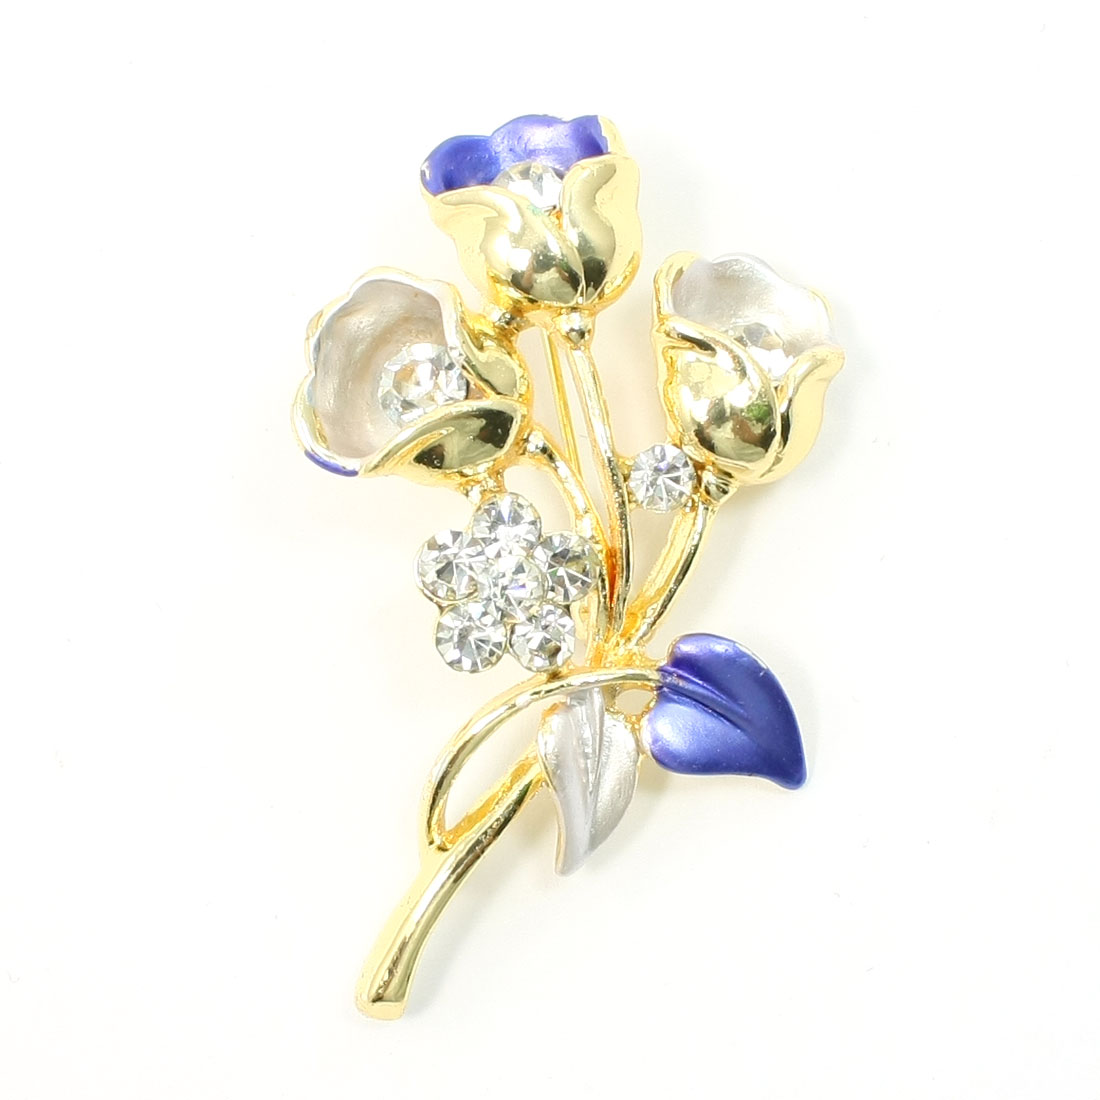 Woman Lady Glittery Rhinestone Inlaid Flower Blue Leaf Metal Brooch Gold Tone